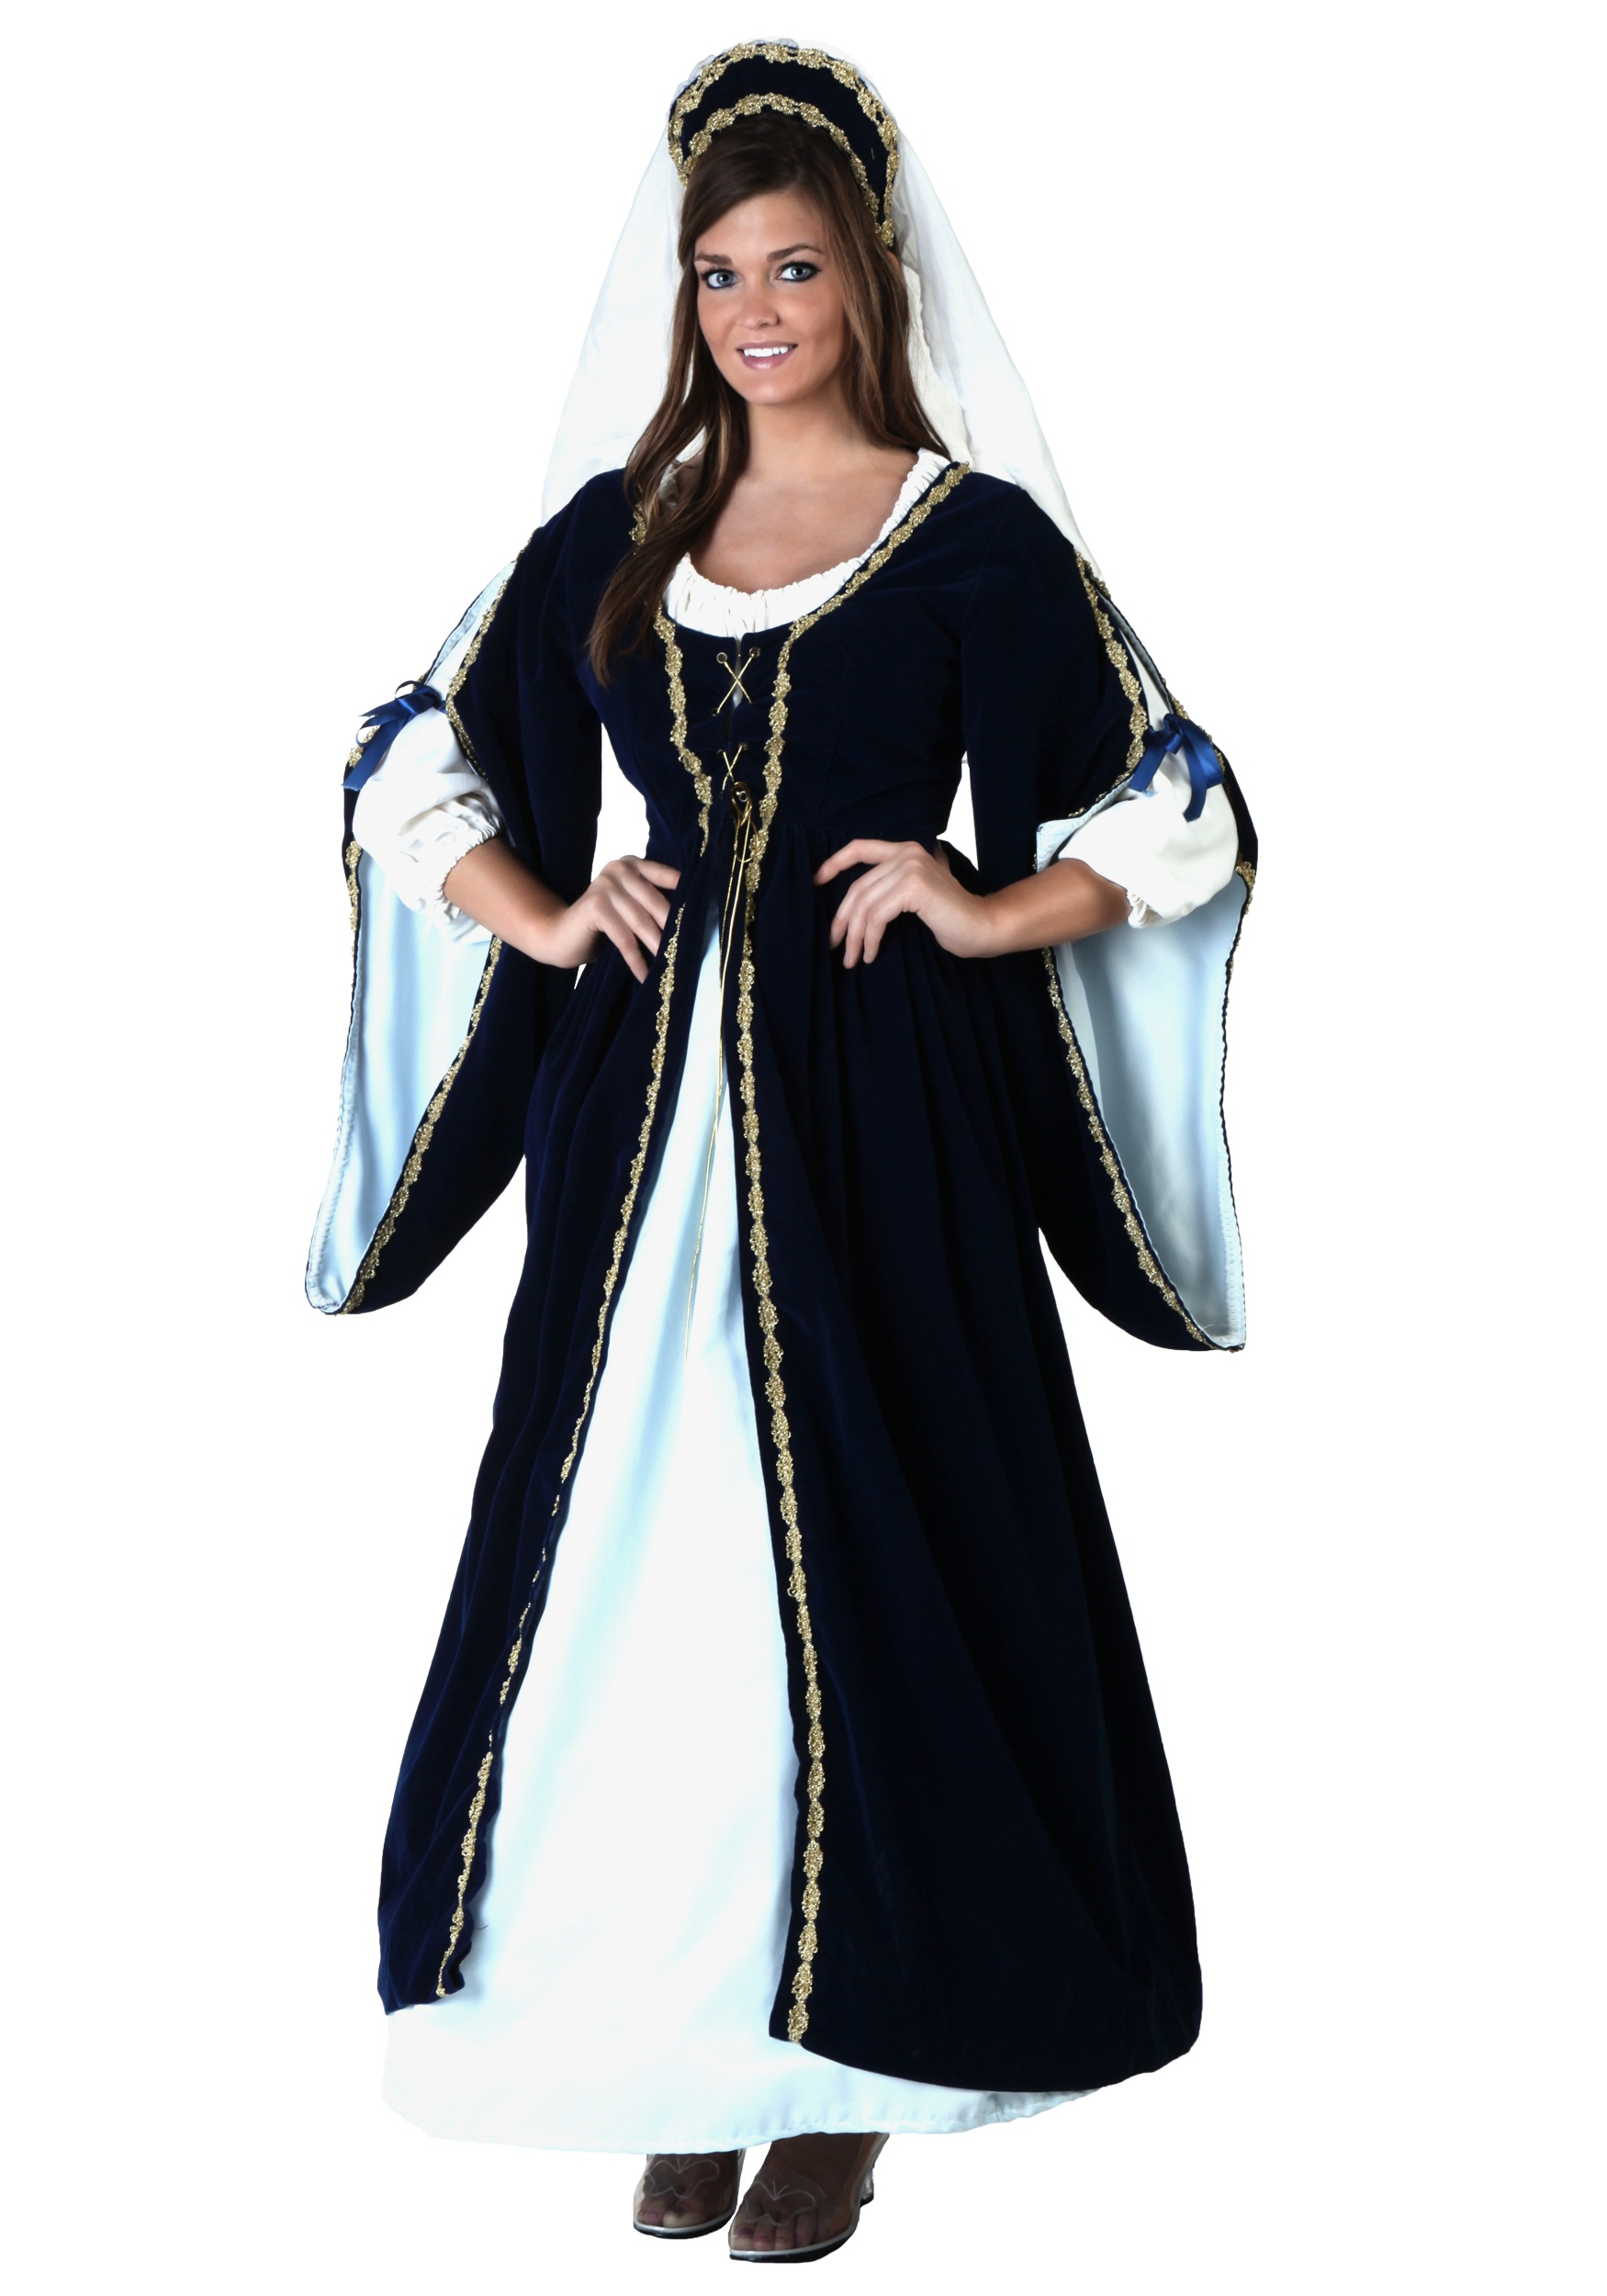 To purchase a Renaissance costume see our other website Renaissance